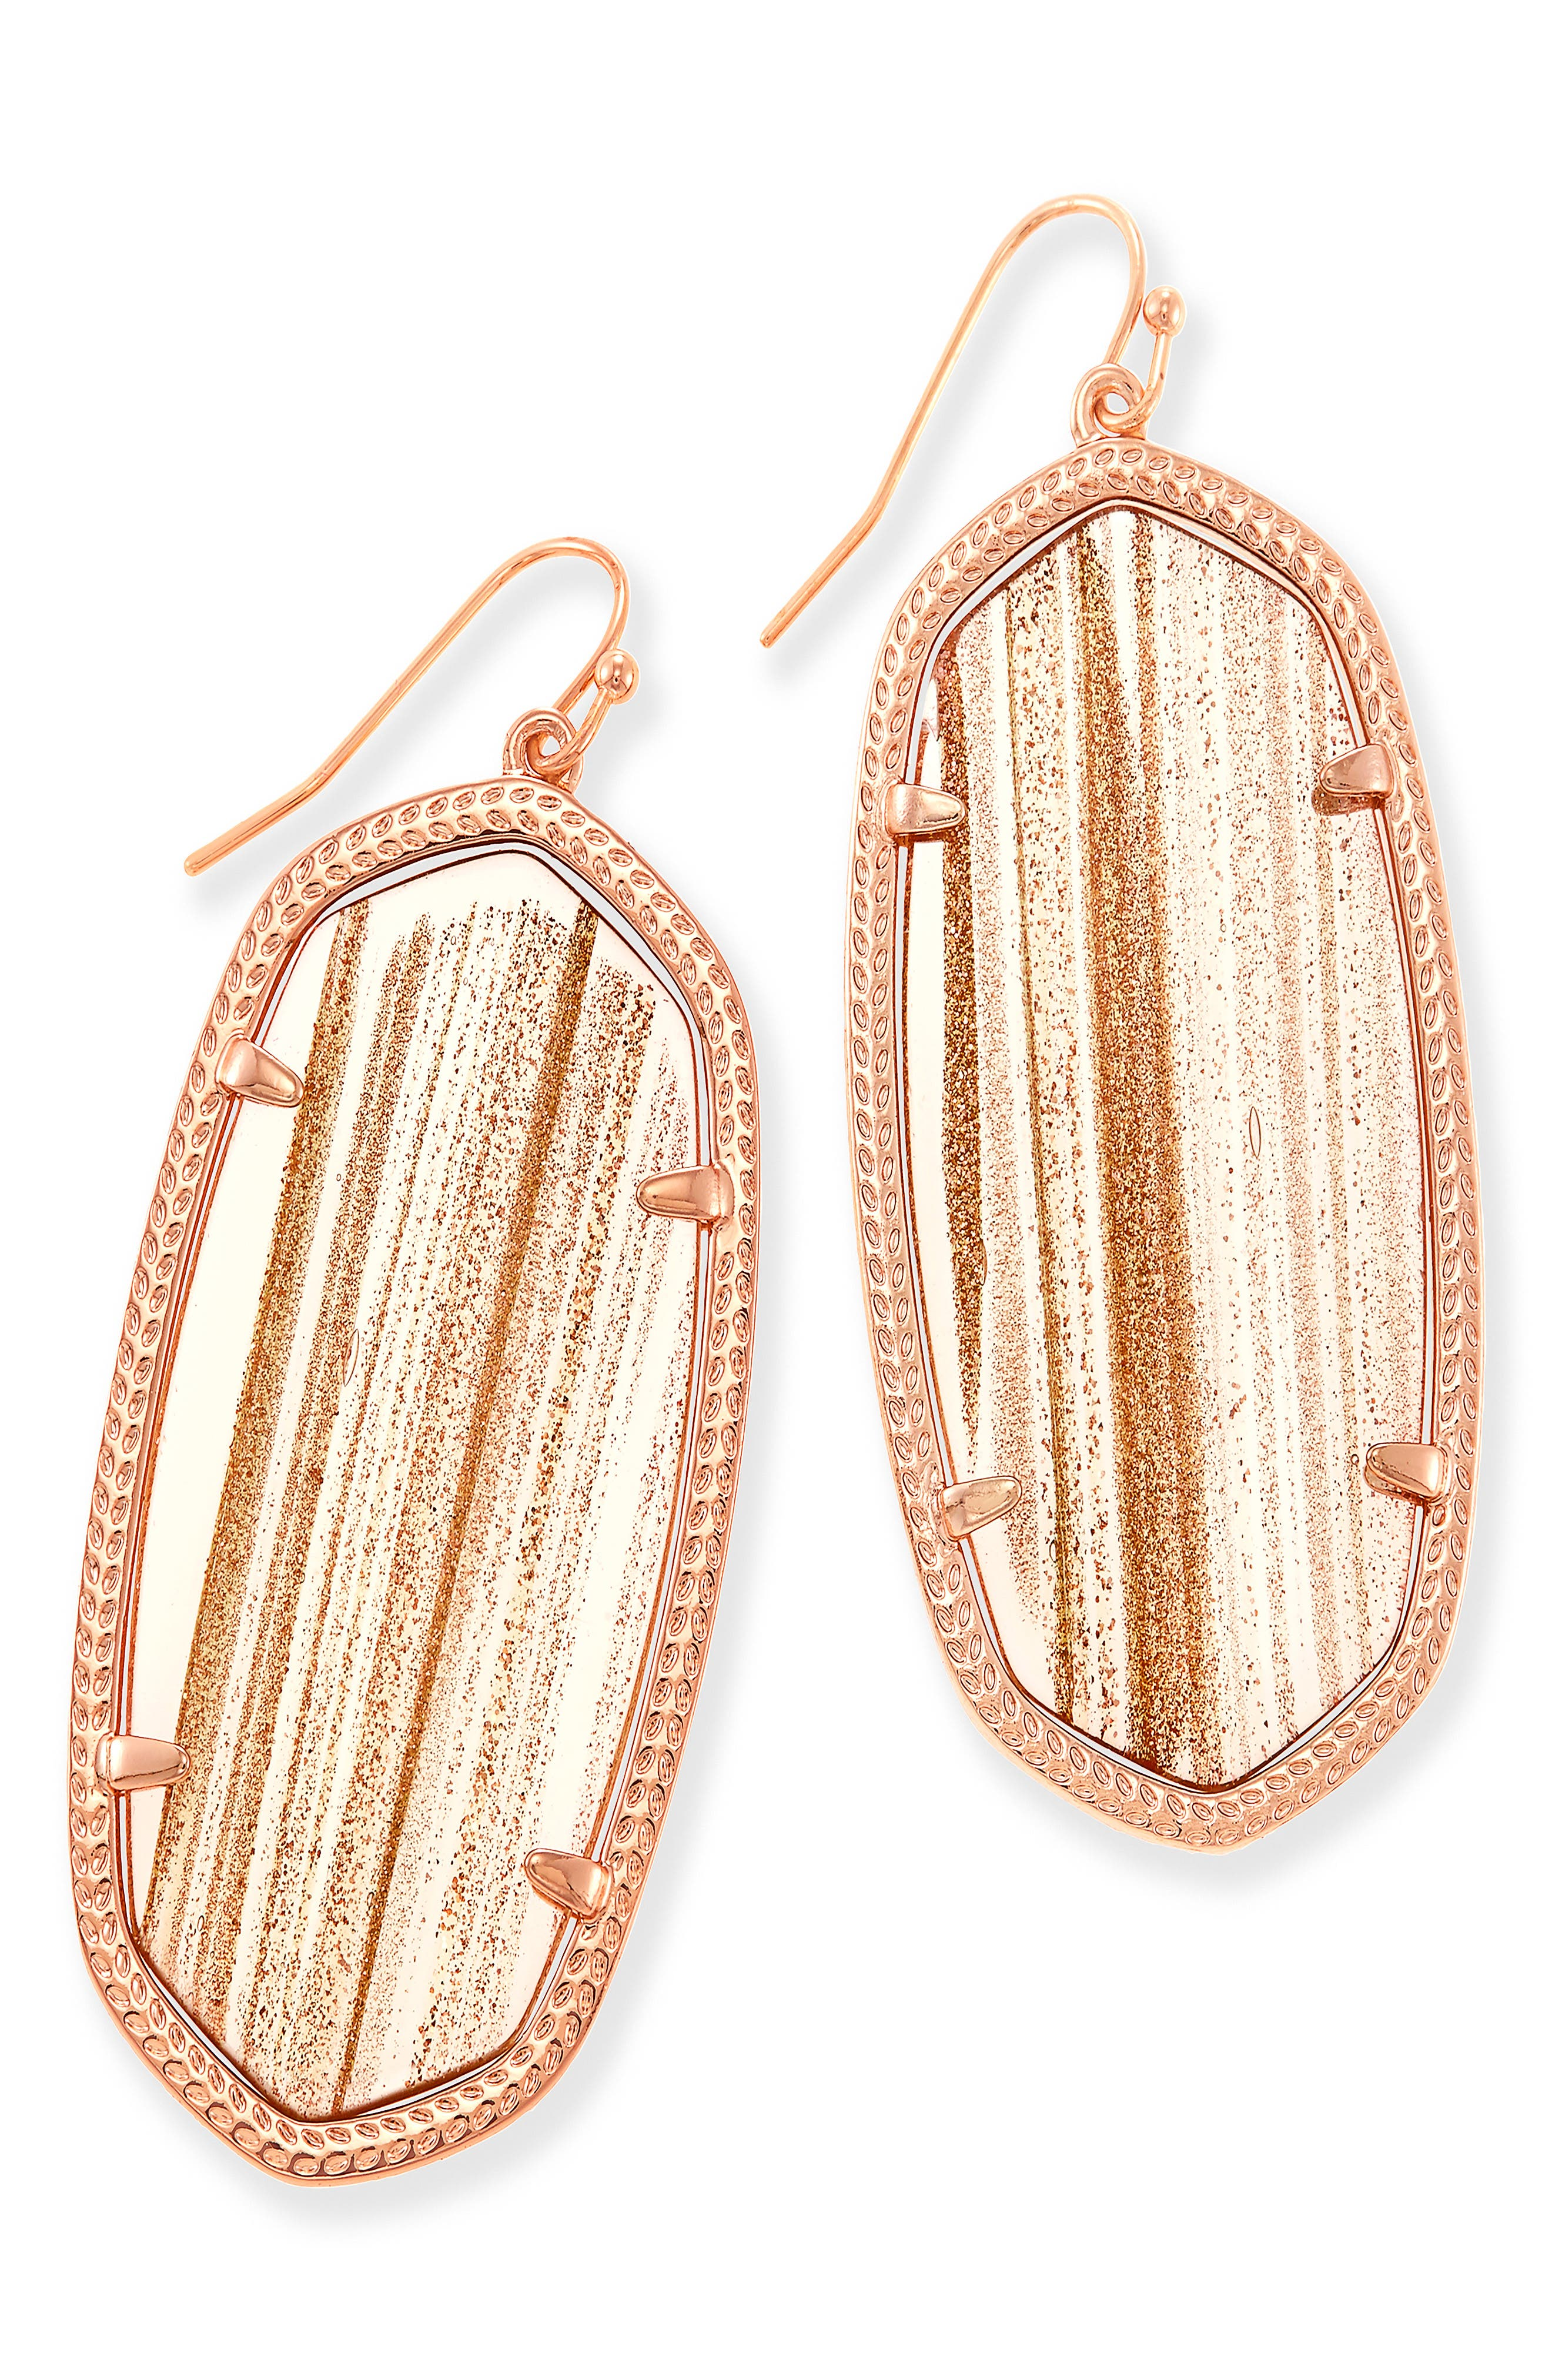 Danielle - Large Oval Statement Earrings,                             Alternate thumbnail 174, color,